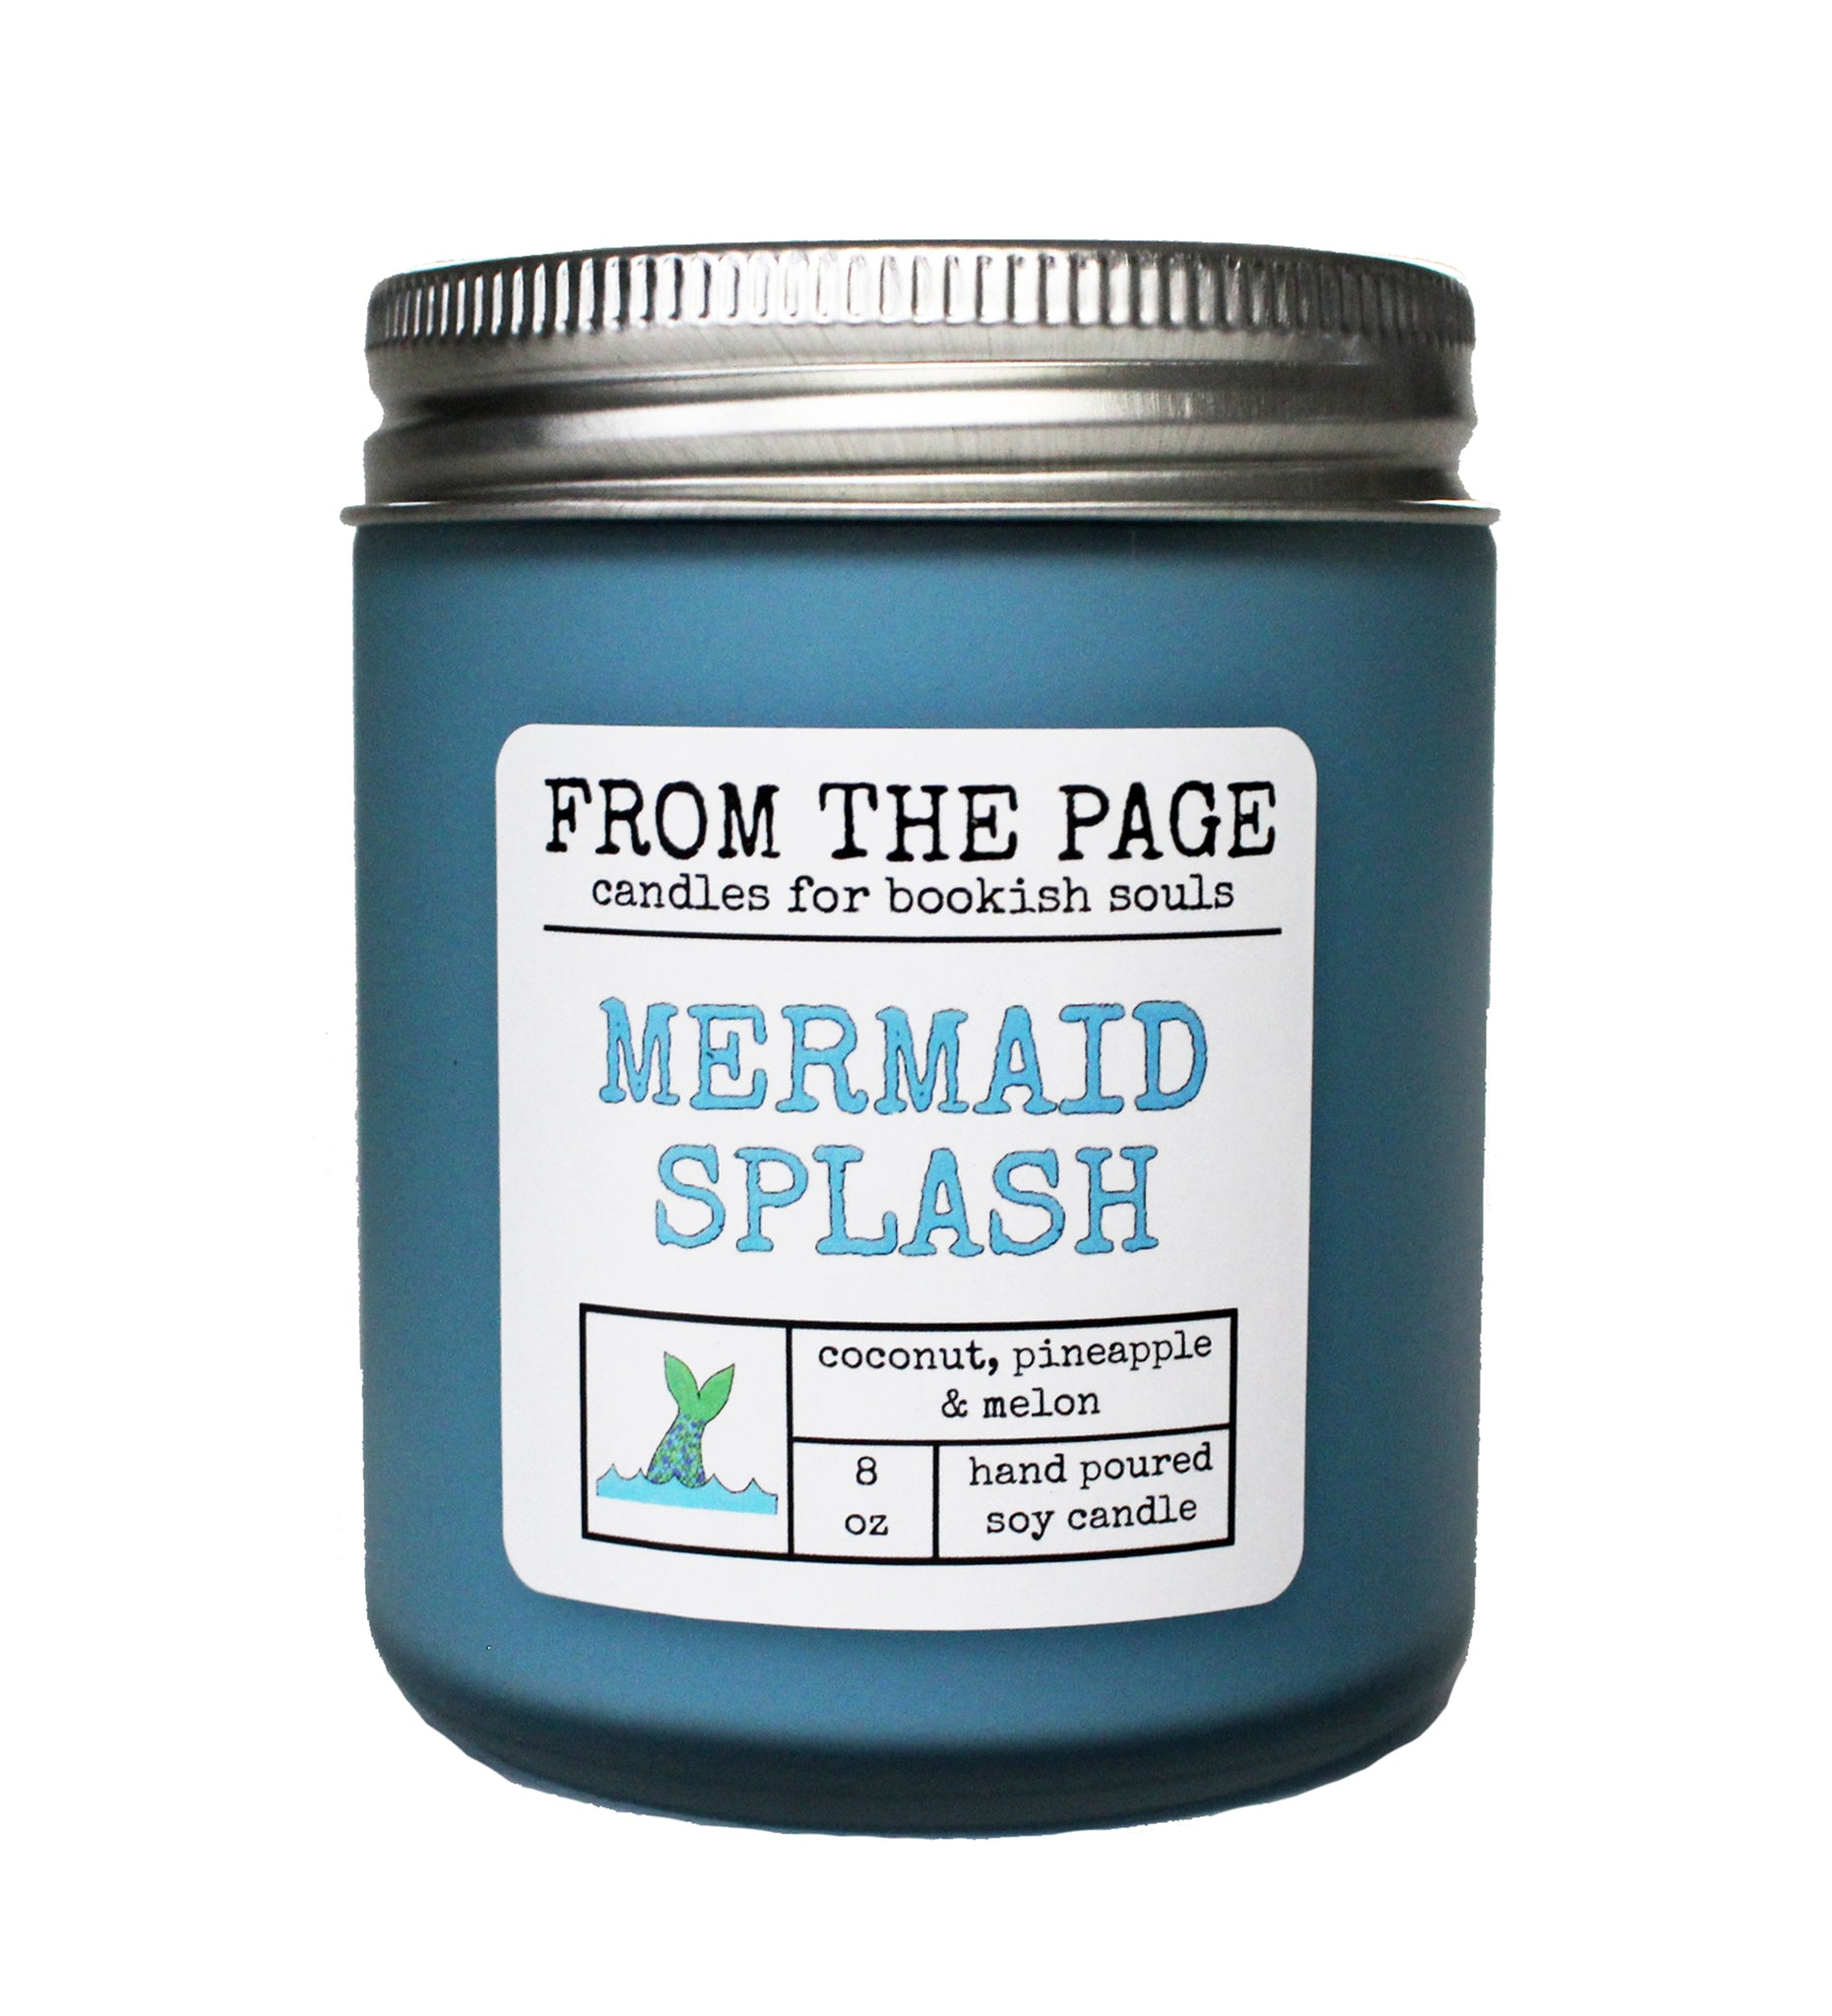 Mermaid Splash